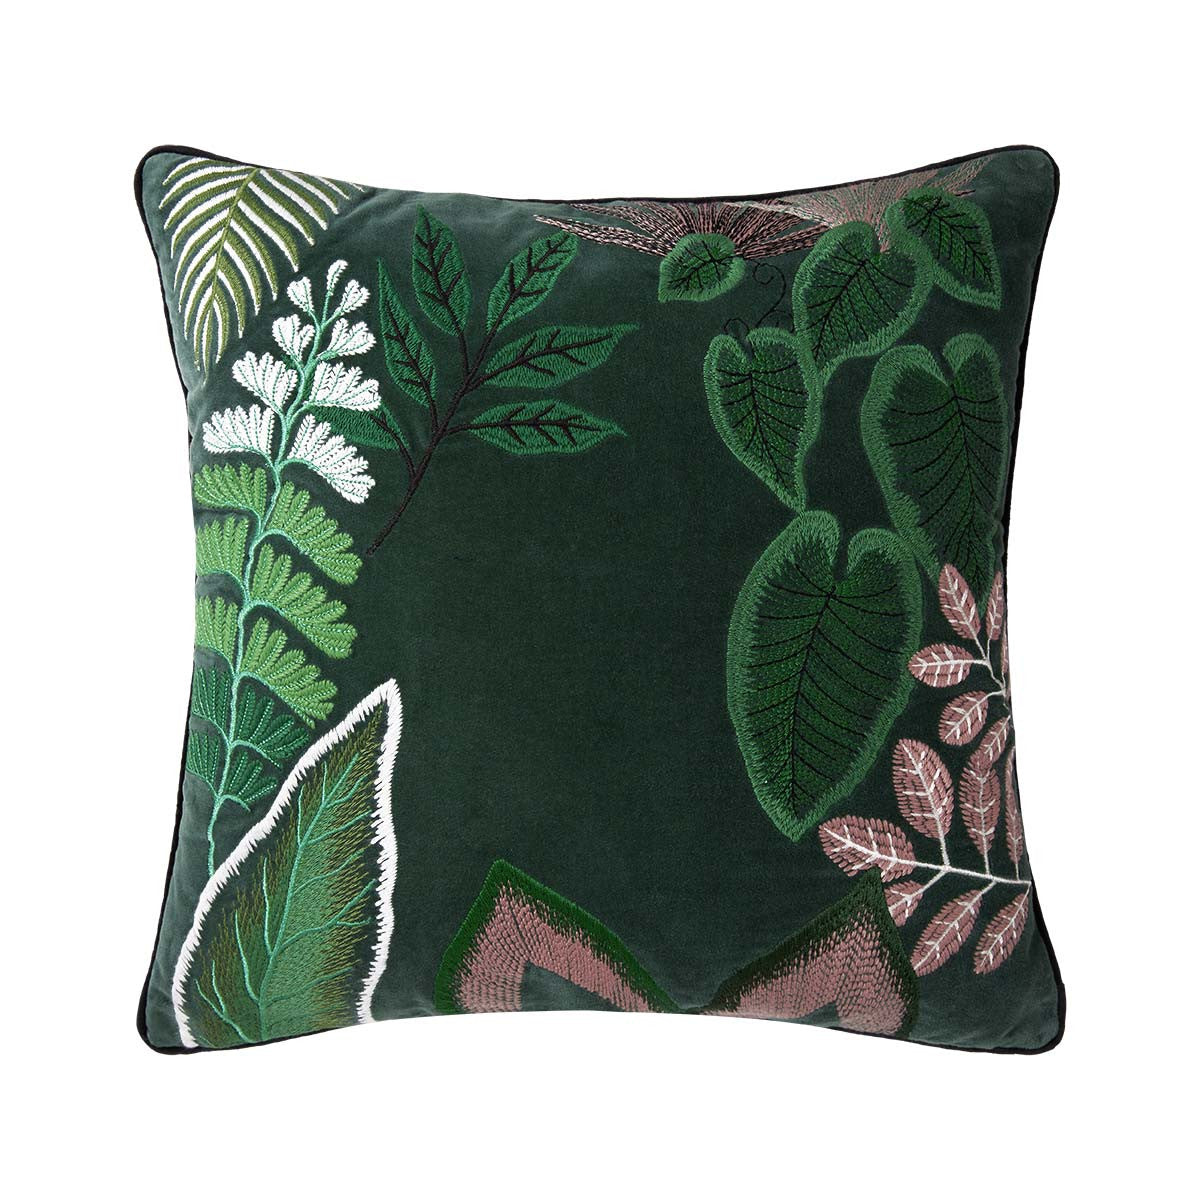 Bayou Vert Decorative Pillow by Iosis